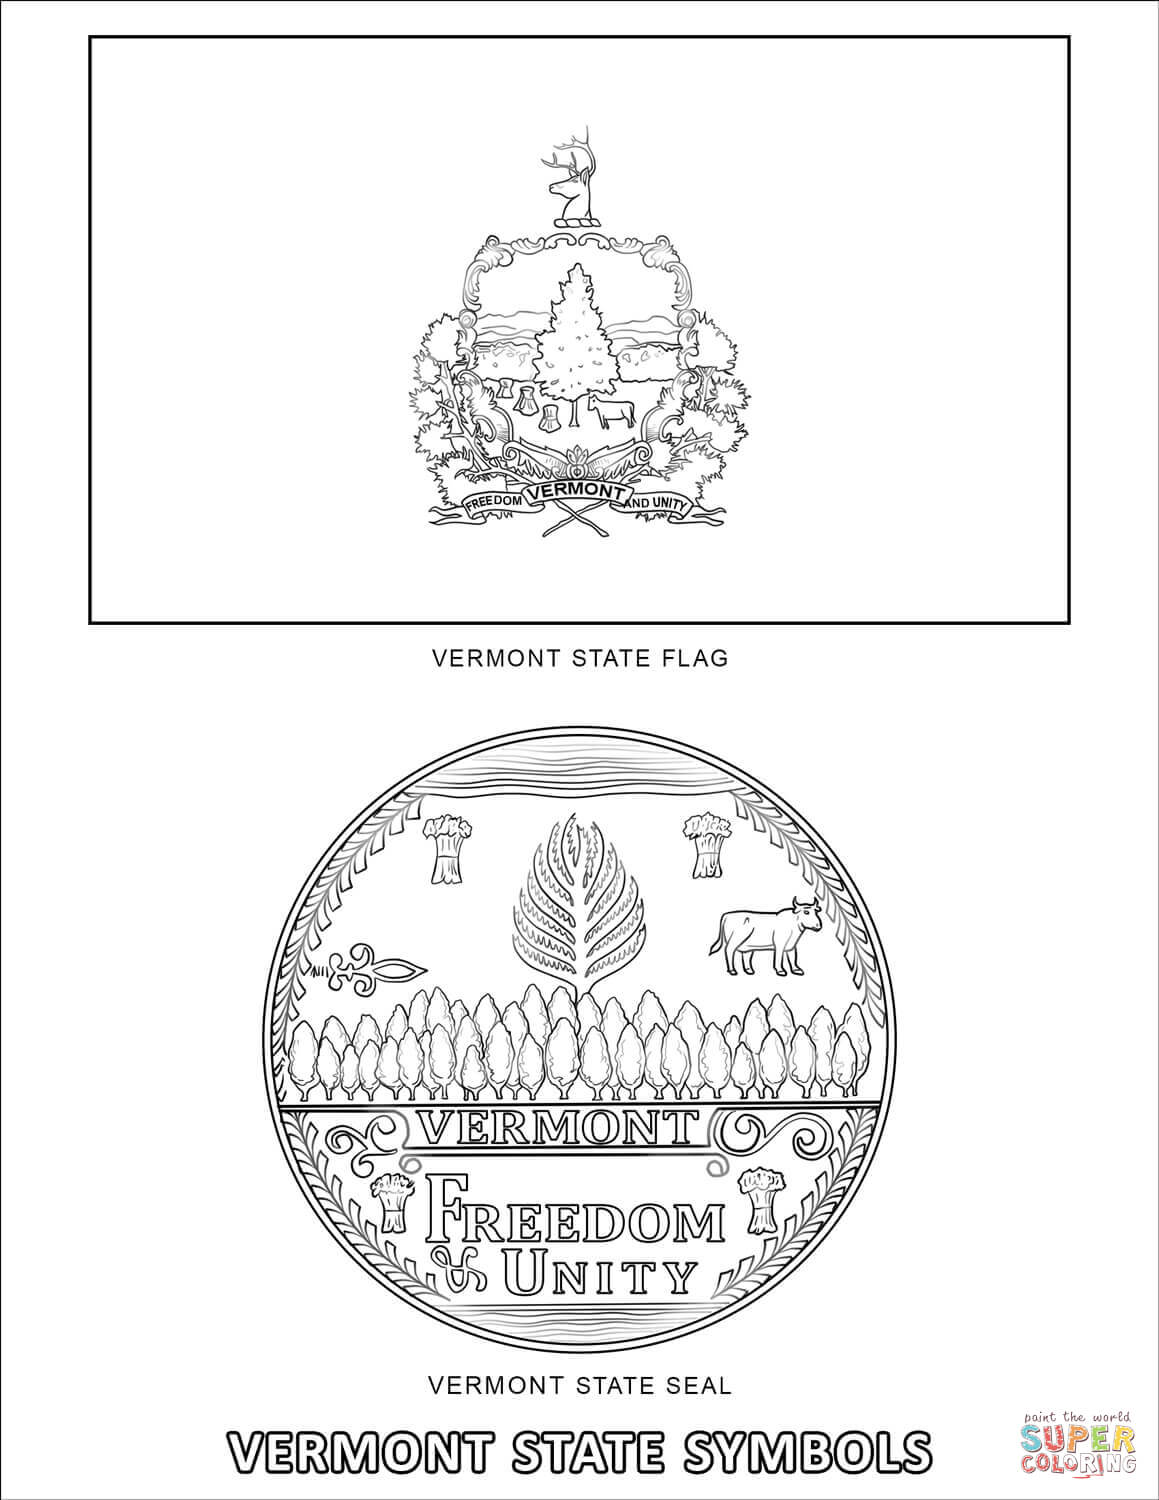 vermont state flag coloring page vermont state flag coloring pages 2019 open coloring pages page state coloring flag vermont